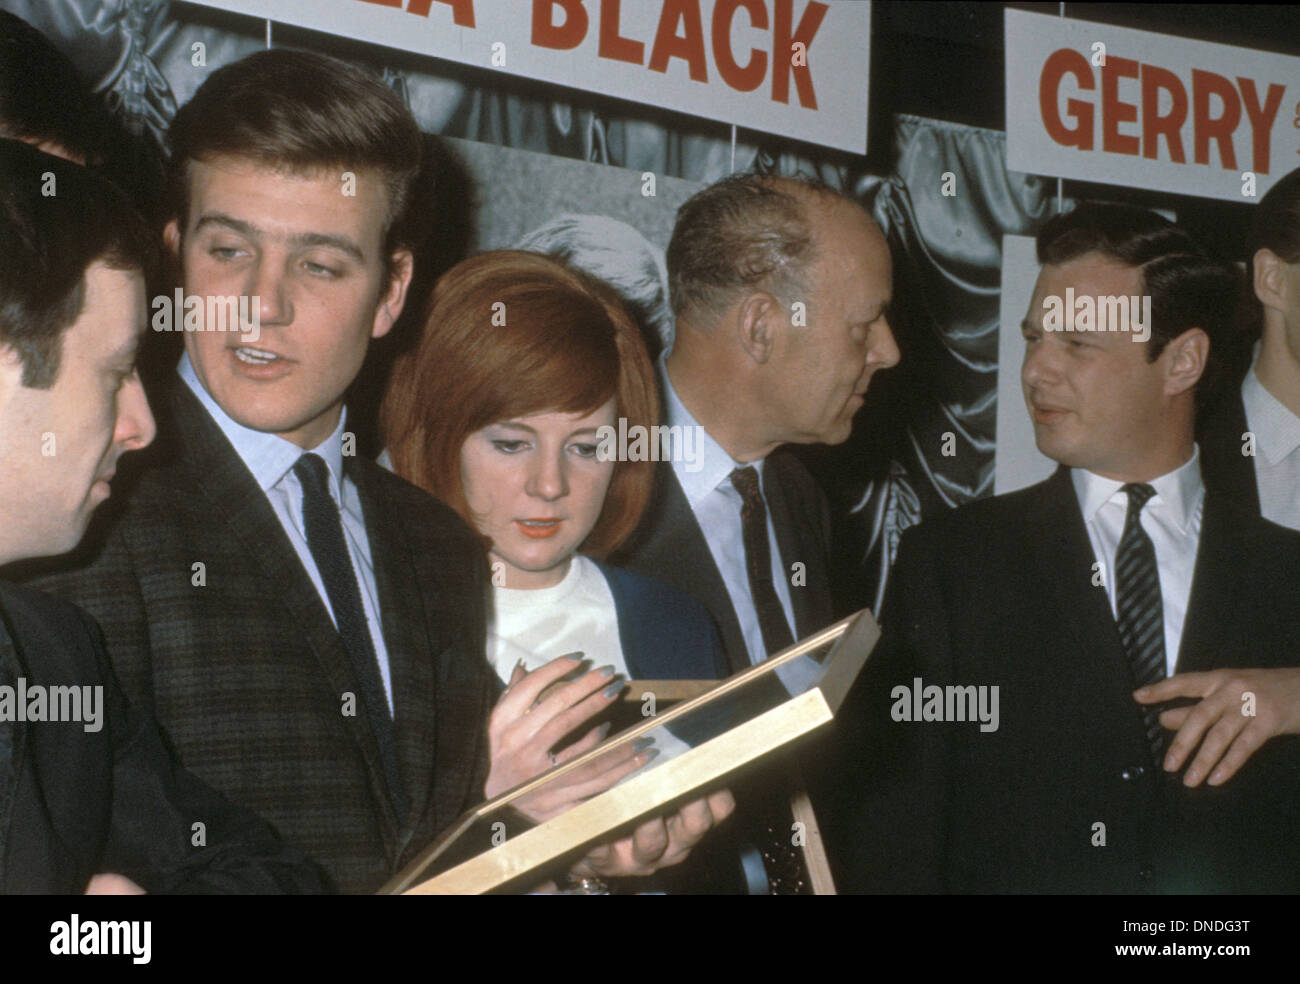 J David Stock Photos Images Alamy Jeep Commander Engine Diagram 5 7 L Emi Brian Epstein At Right With Billy Kramer And Cilla Black Talks To